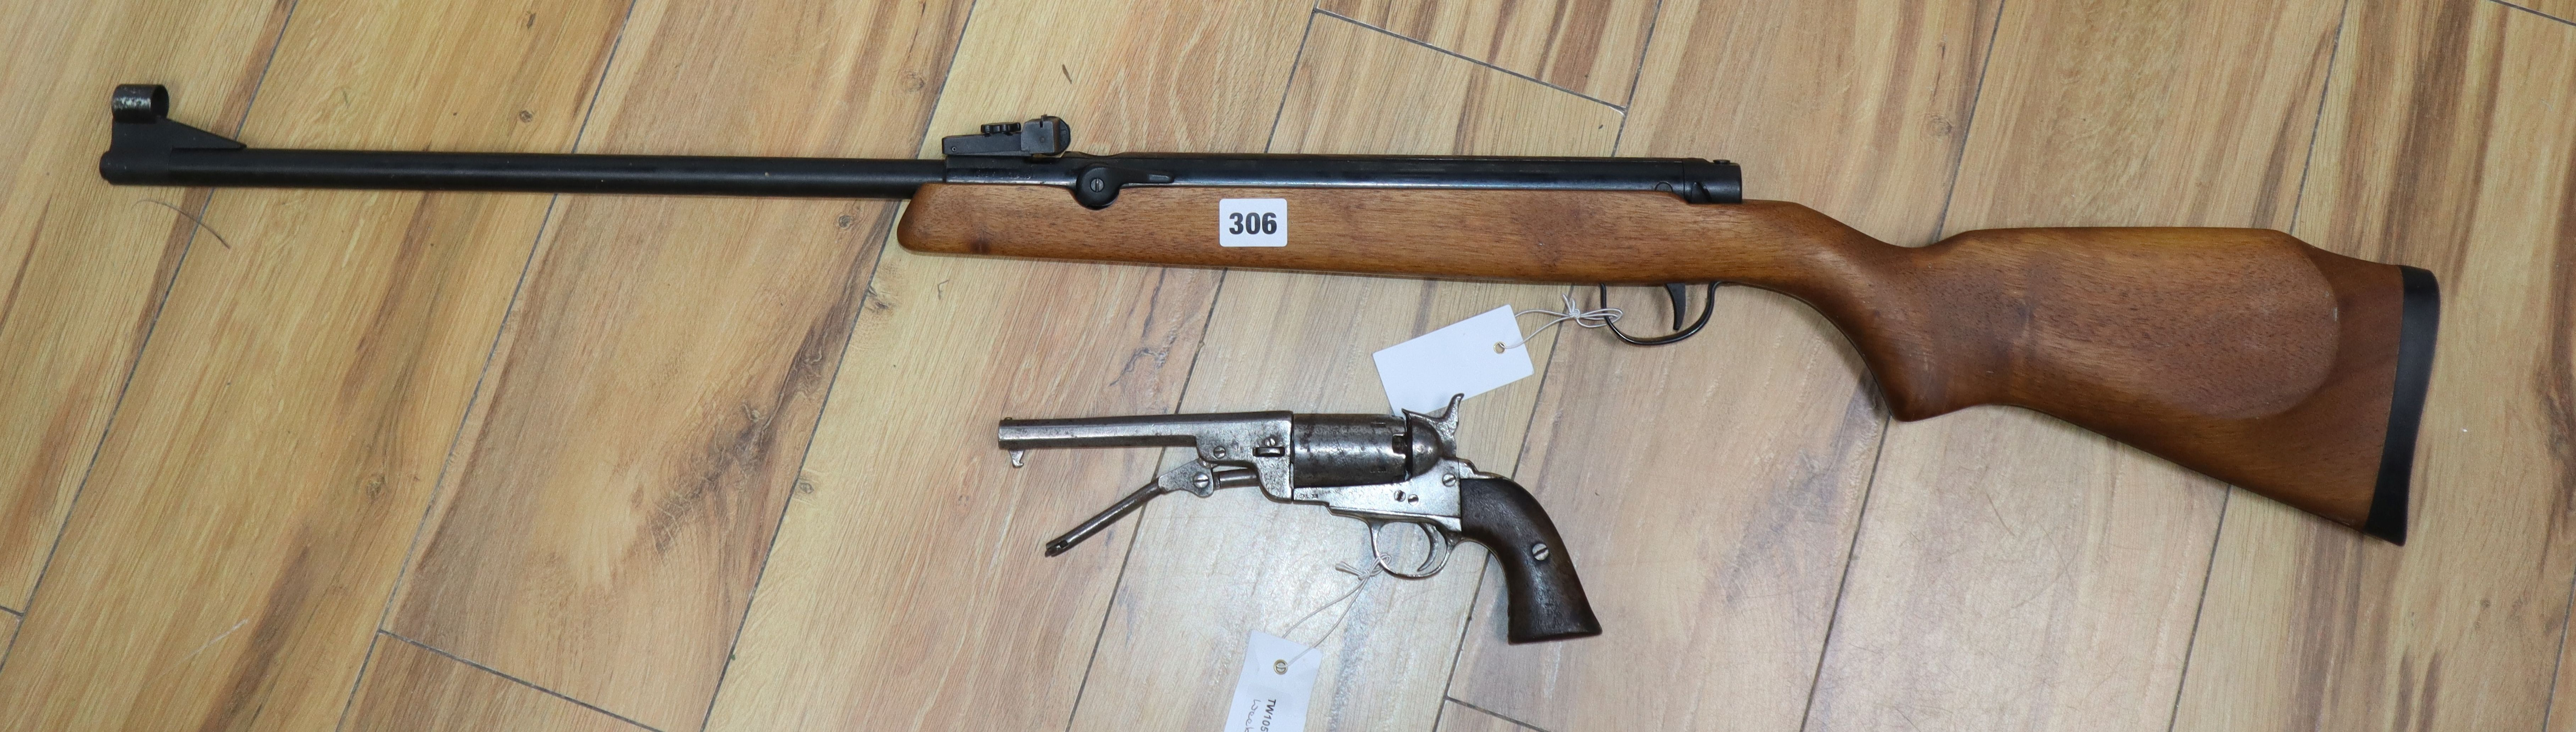 Lot 306 - A percussion Colt-pattern revolver and an Osprey air rifle by Osprey